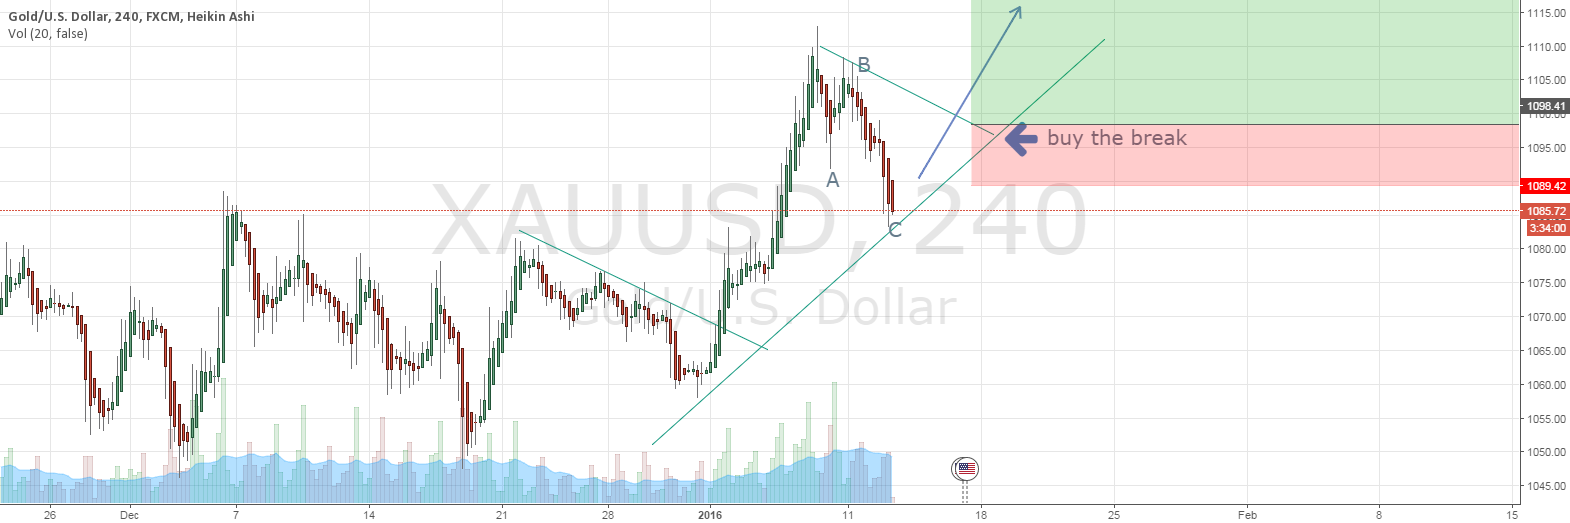 NEXT IMPULSE XAUUSD BUY